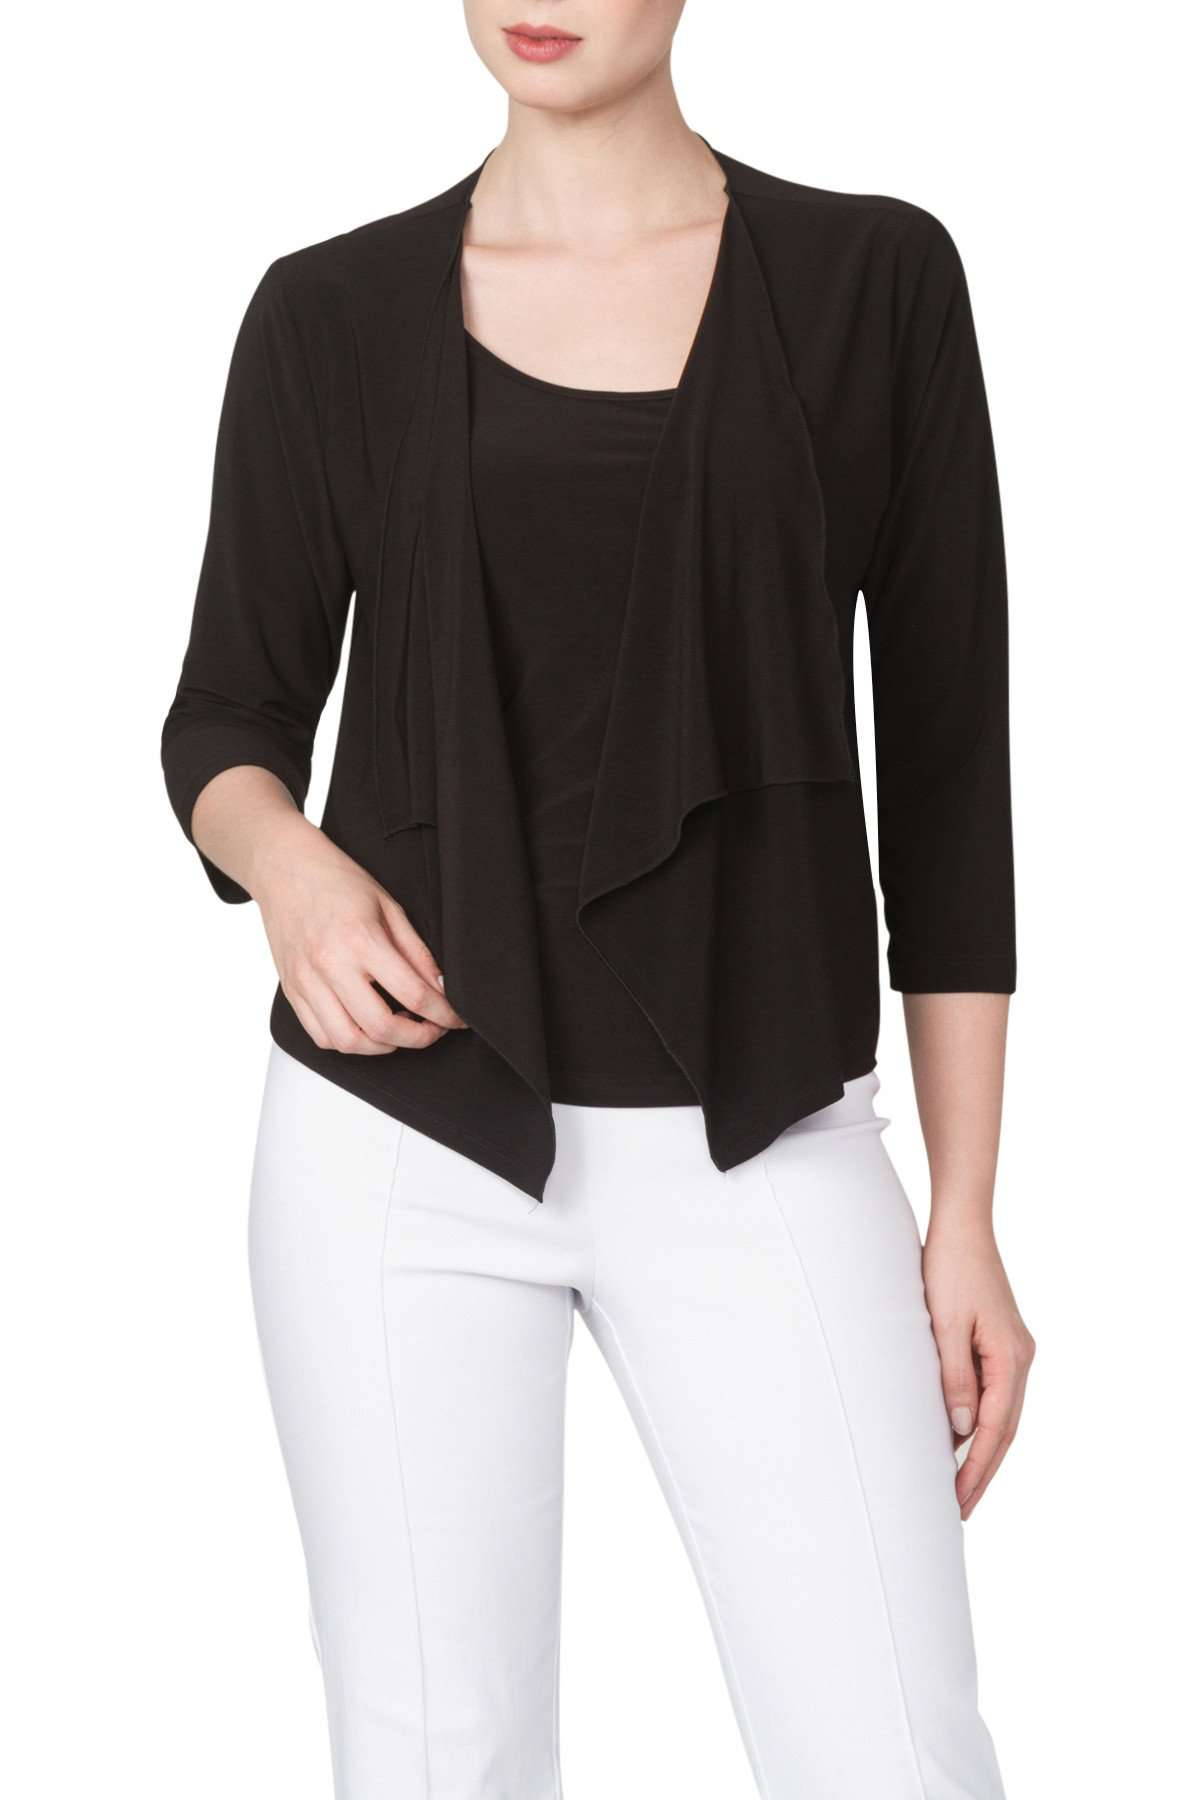 Black Bolero Jacket Soft Washable Knit Fabric  Our Best Seller Great Fit and Quality - Yvonne Marie